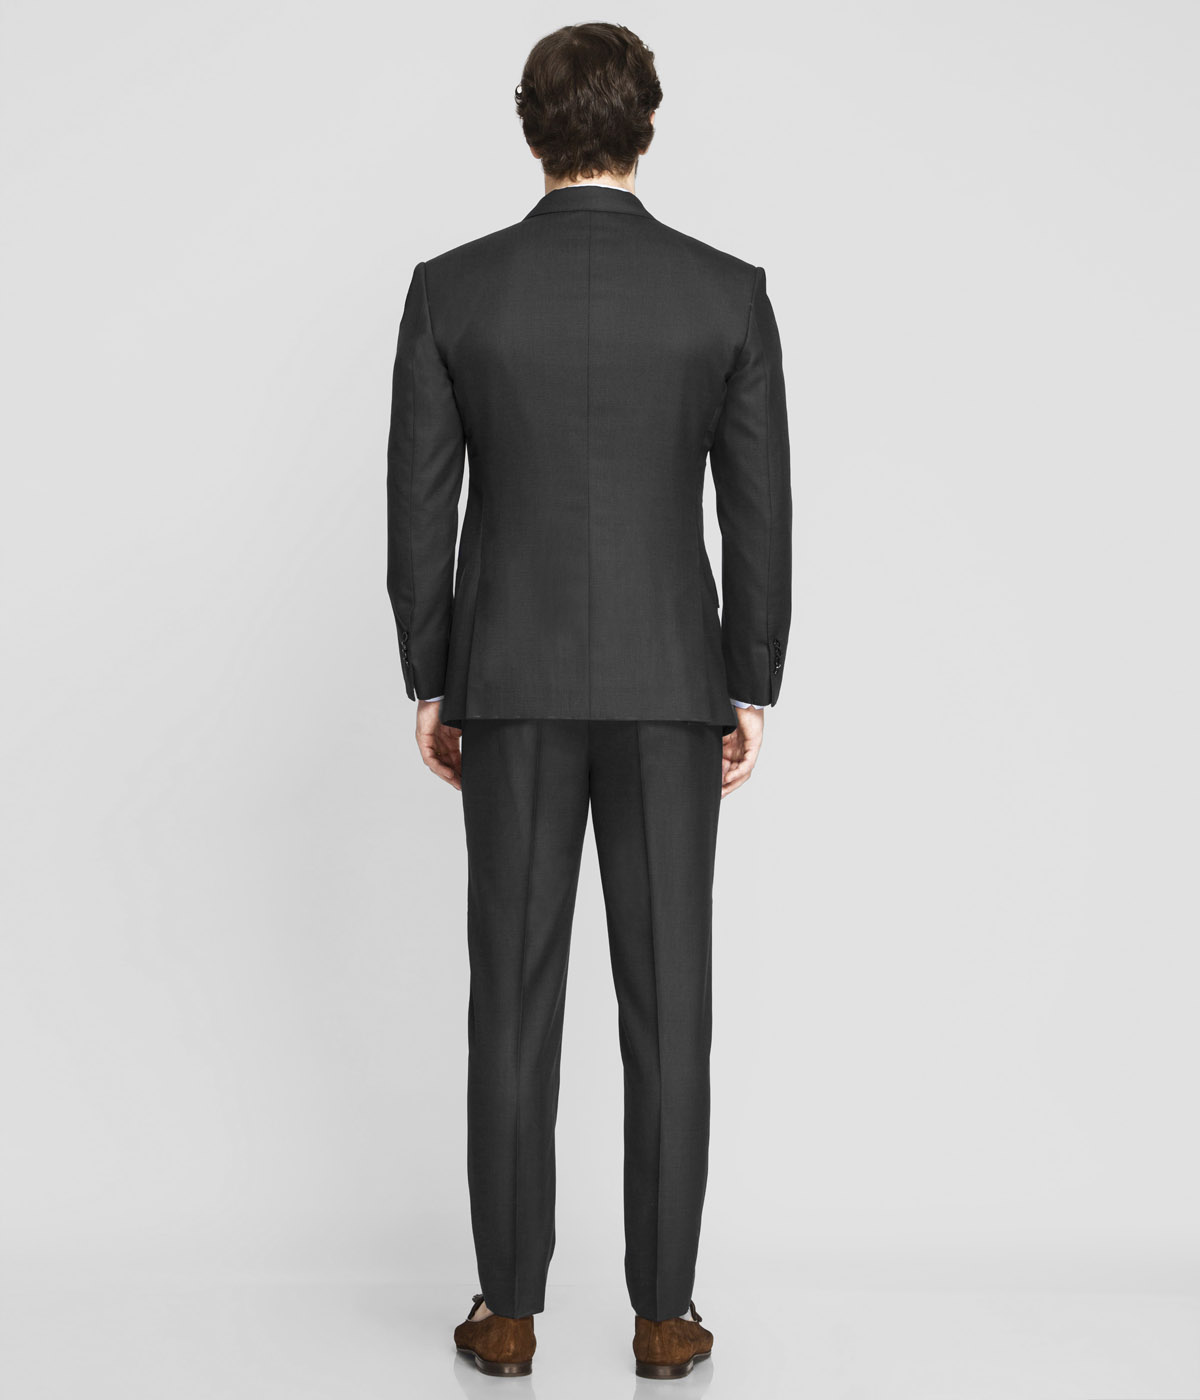 Tribeca Charcoal Birdseye Suit-mbview-2